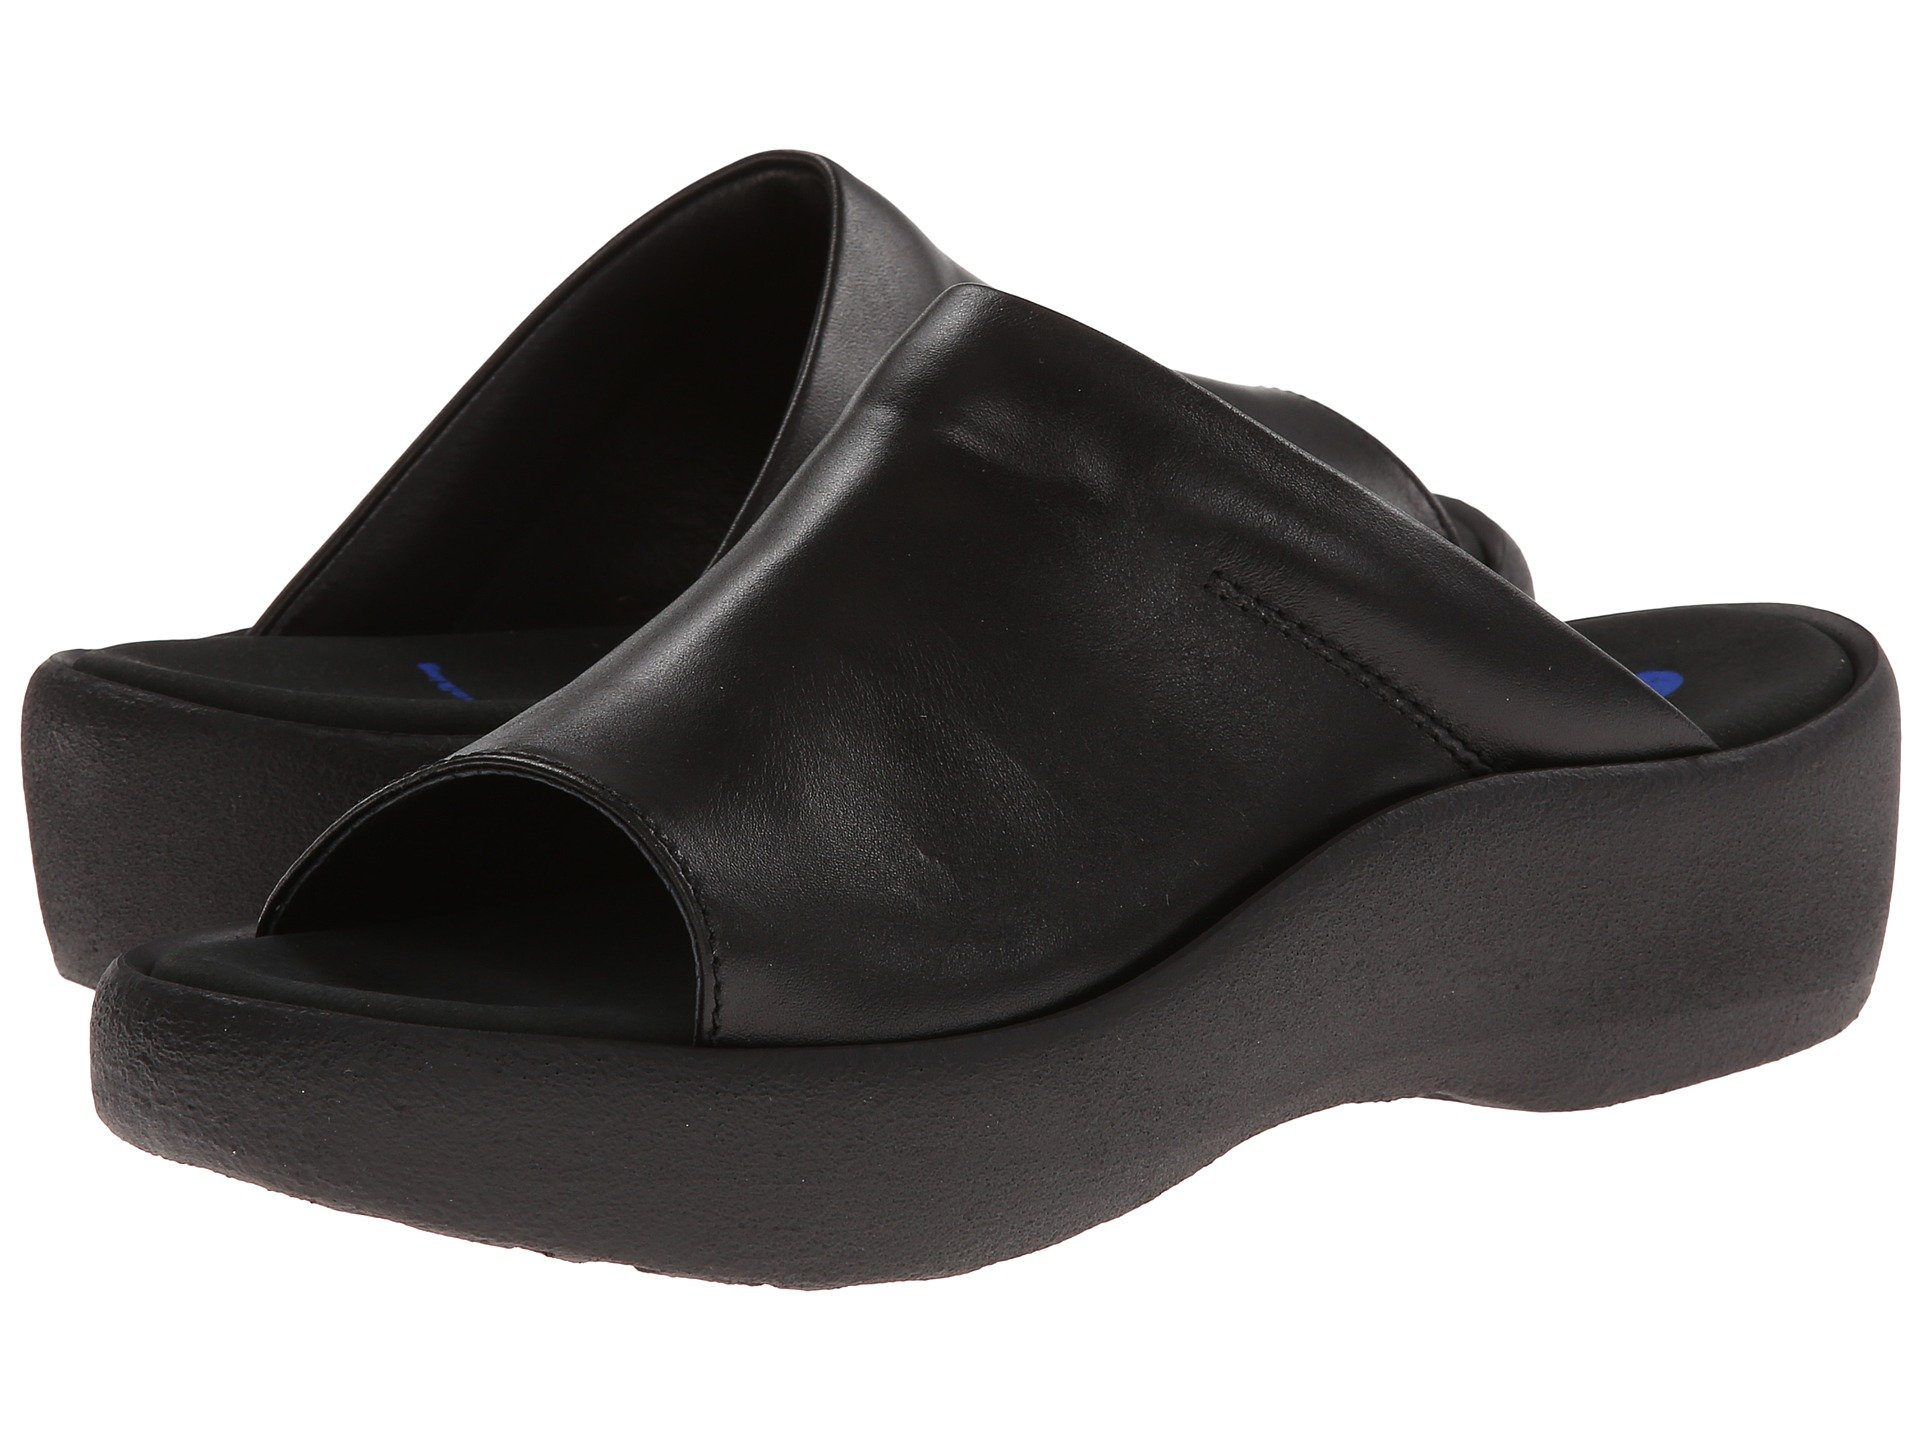 803d26420ce Women s Wolky Shoes + FREE SHIPPING